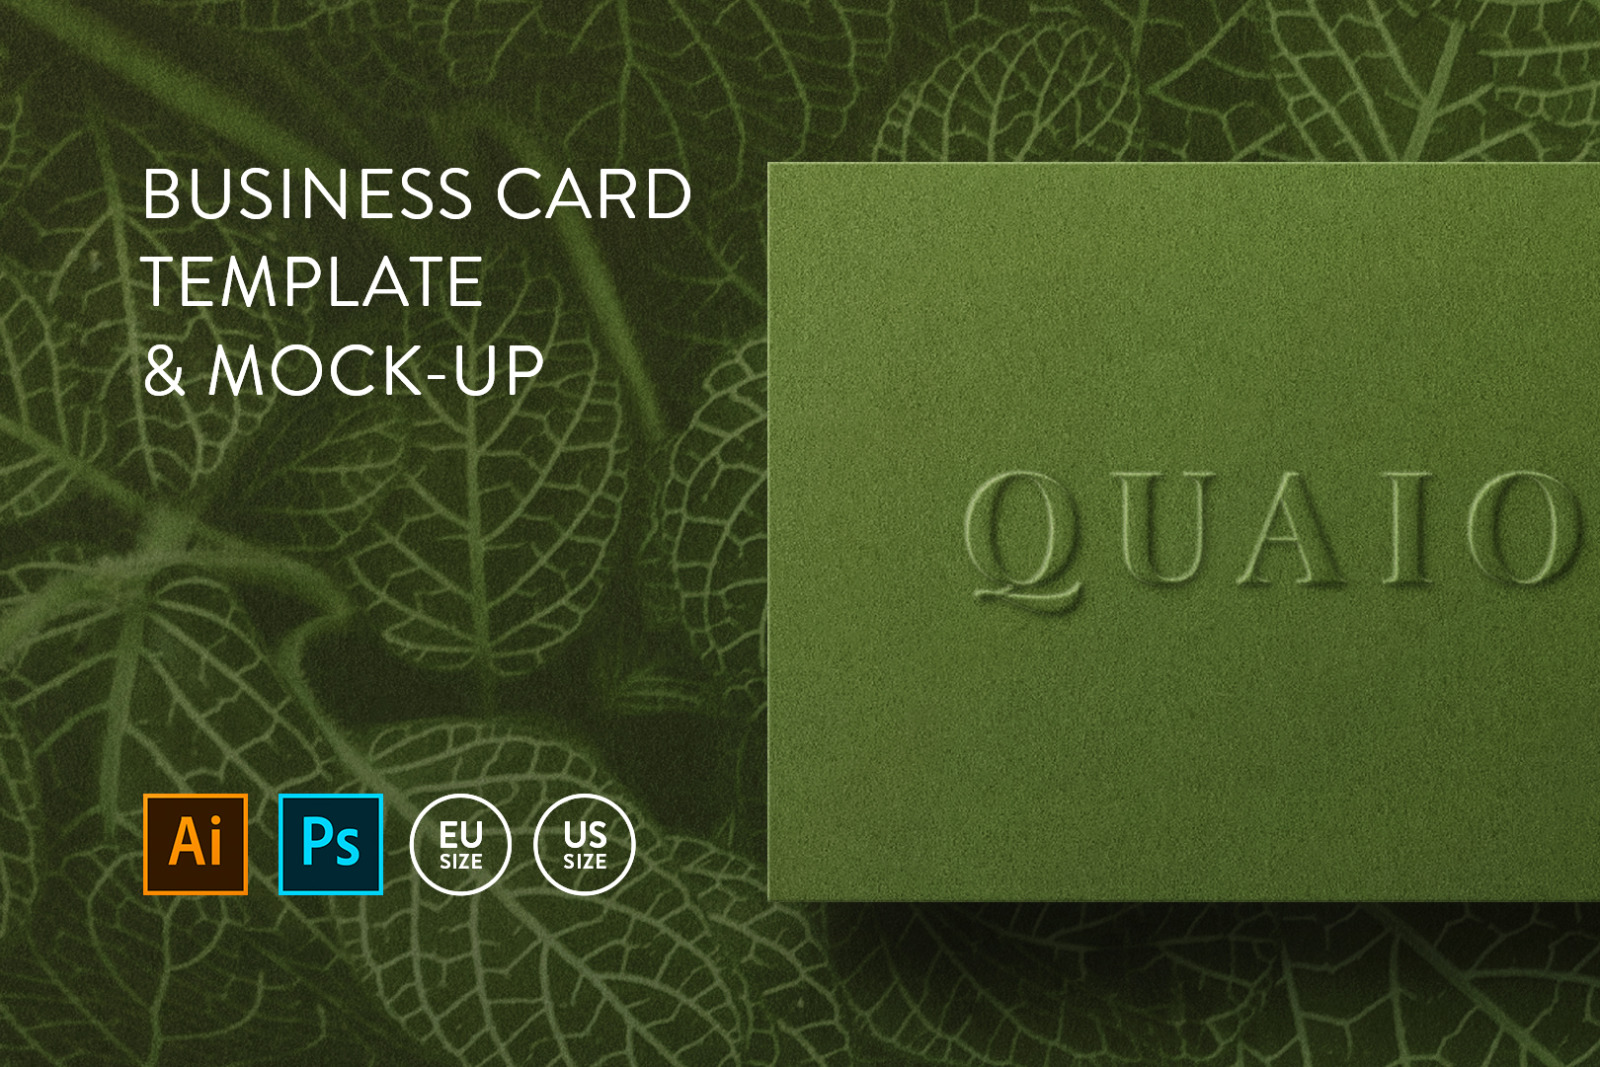 Business card Template & Mock-up #3